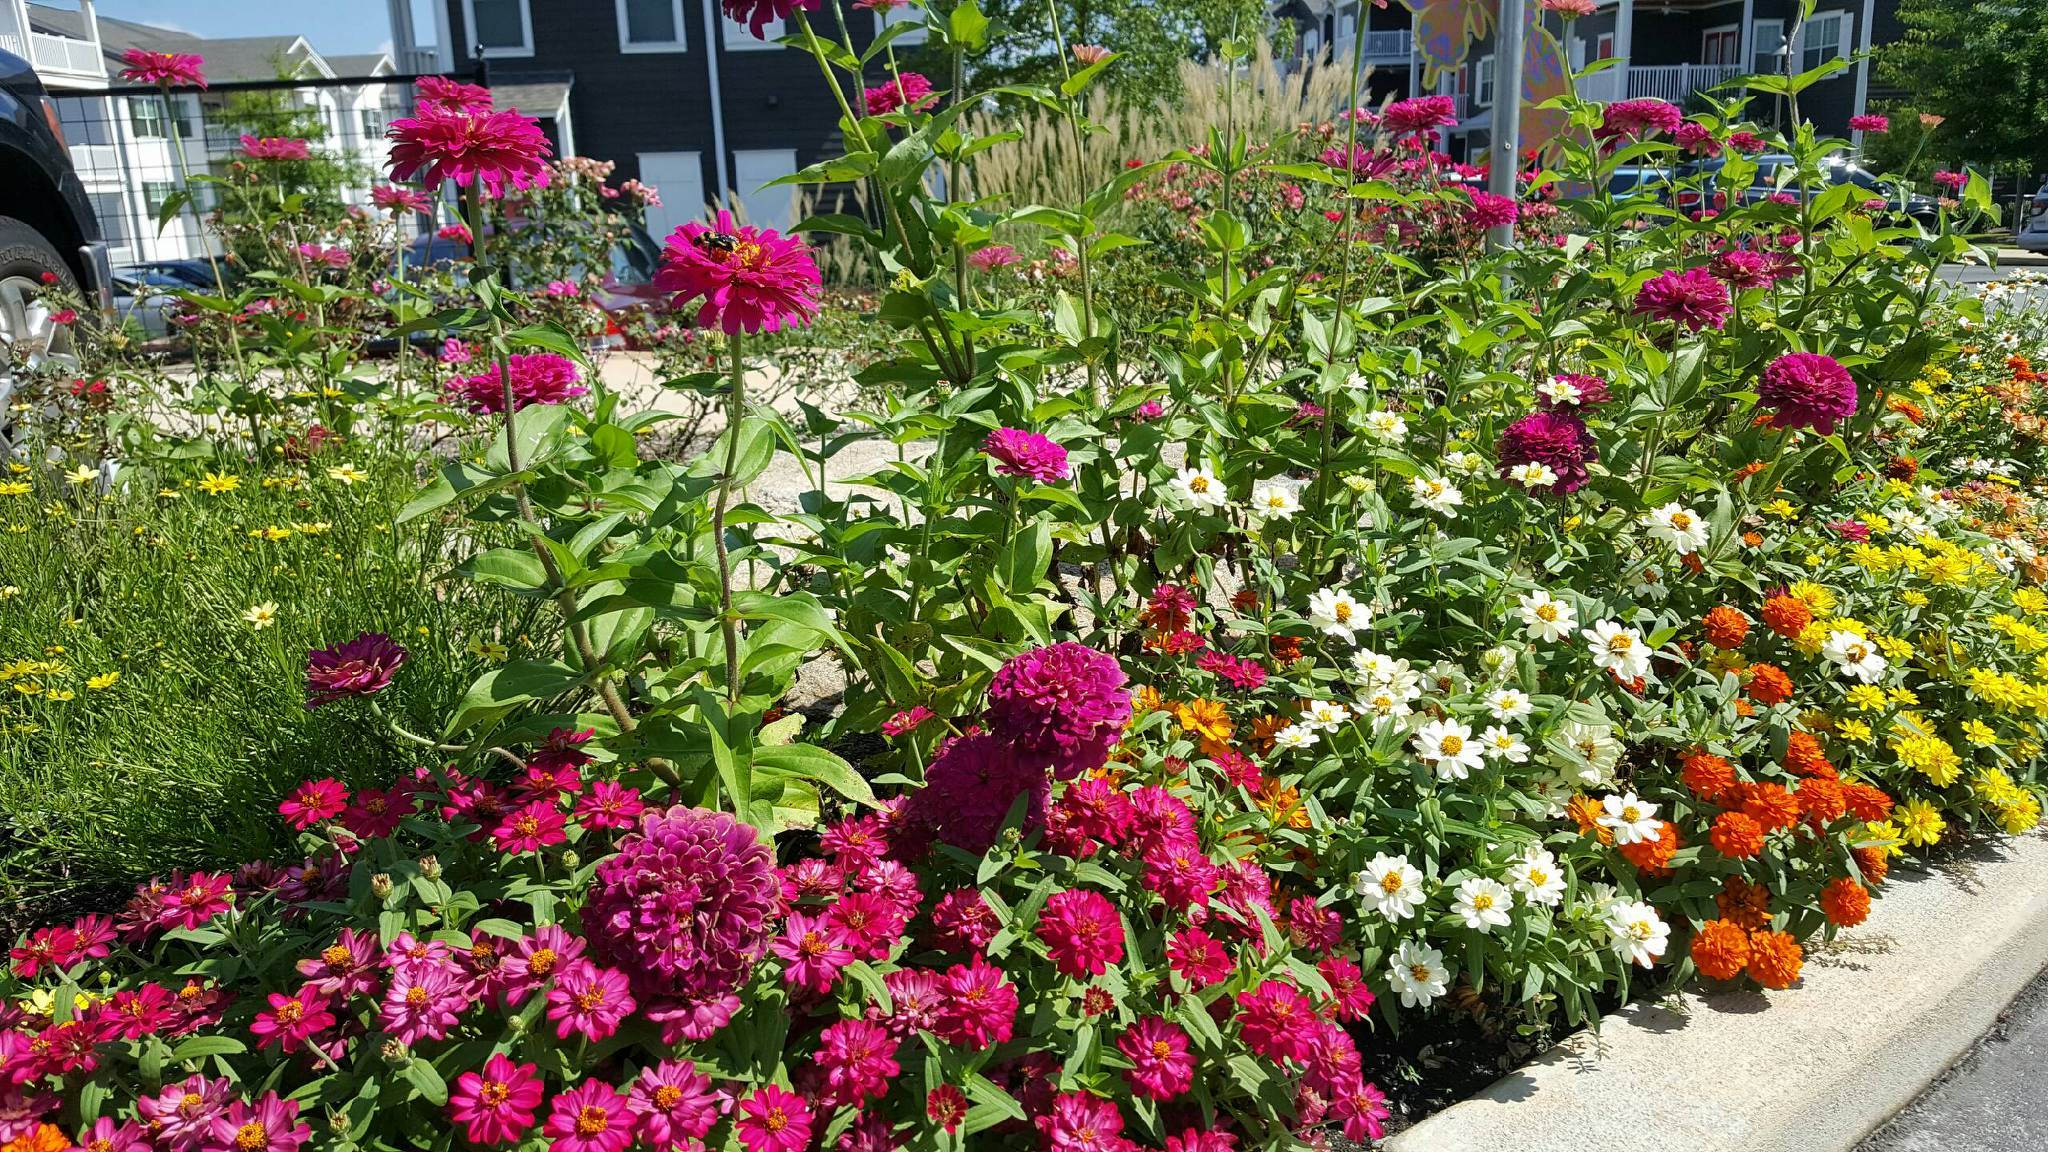 In the landscape, Uproar zinnias work in a cottage setting, pollinator garden and simply as a taller form of intense rose mixed in a living bouquet of mixed colors. Uproar zinnias also excel artistically in designer containers too.